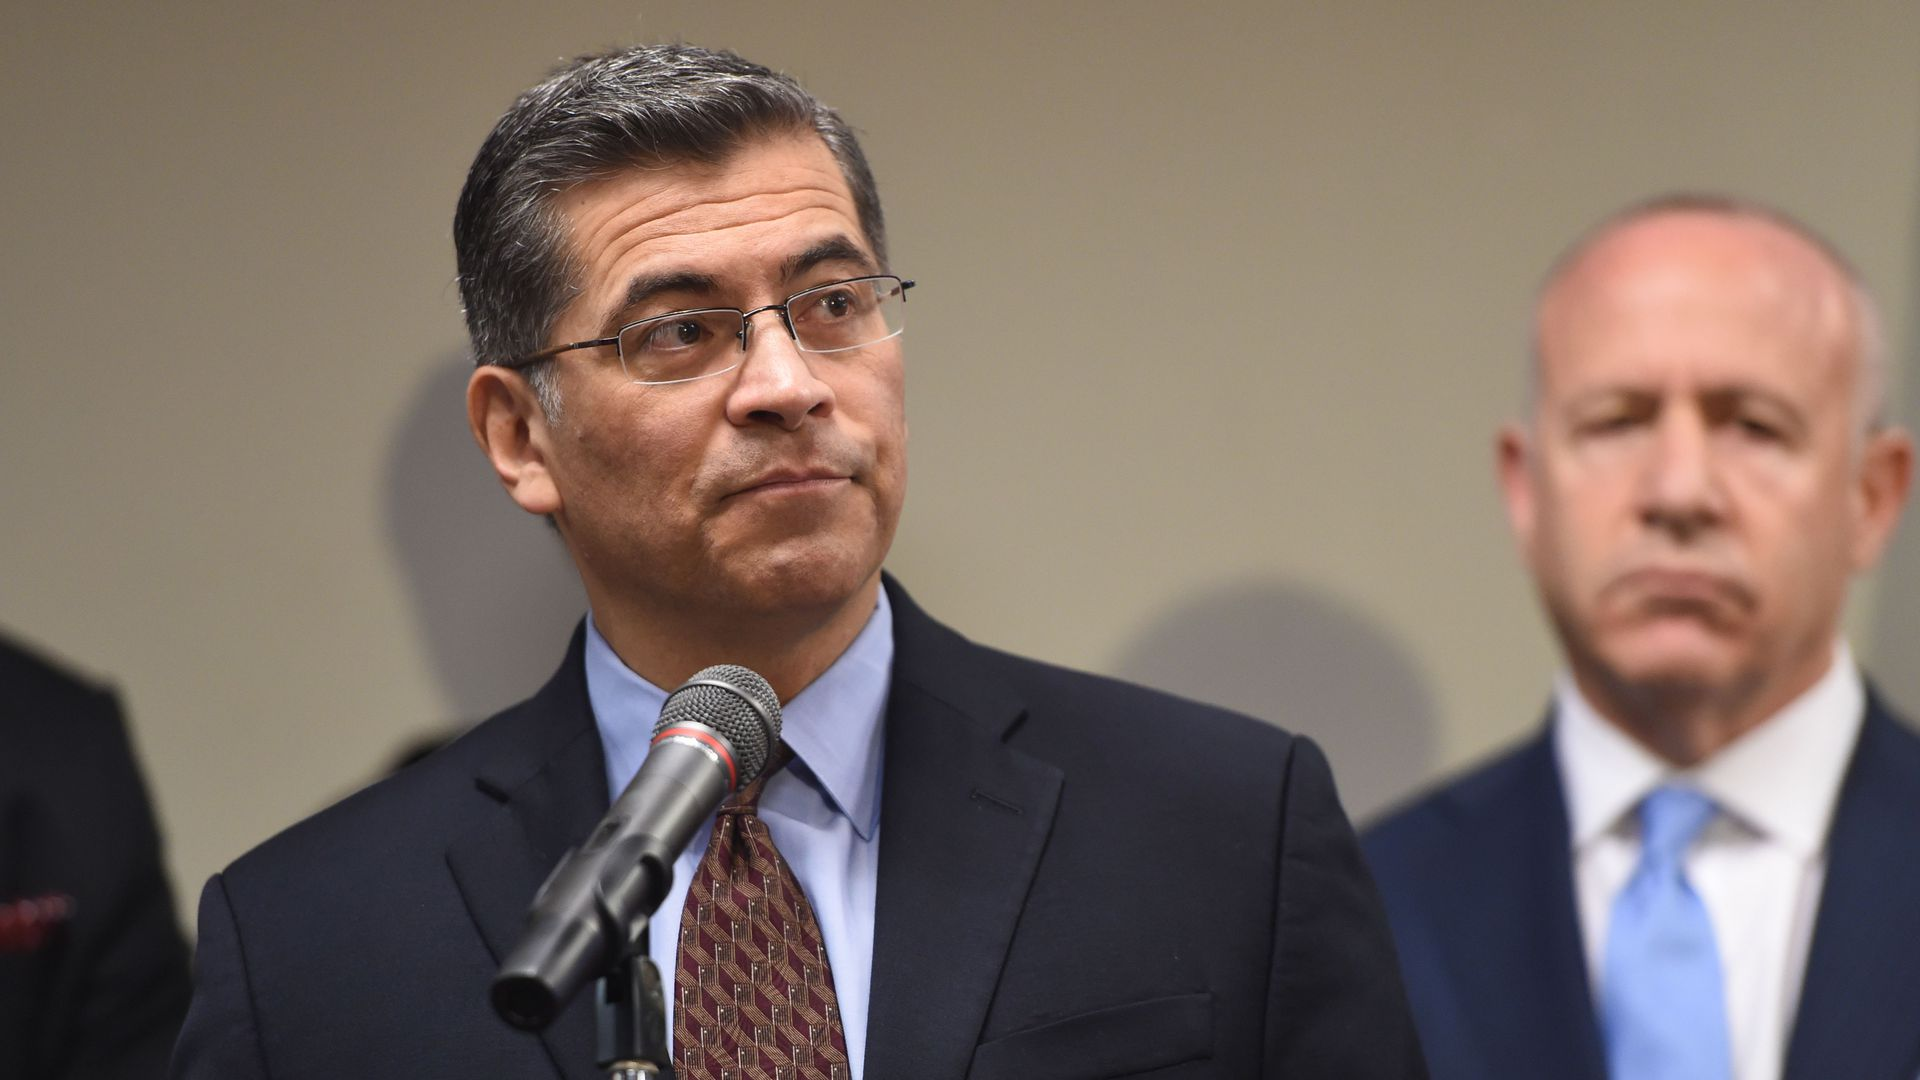 California Attorney General Xavier Becerra speaks at a press conference